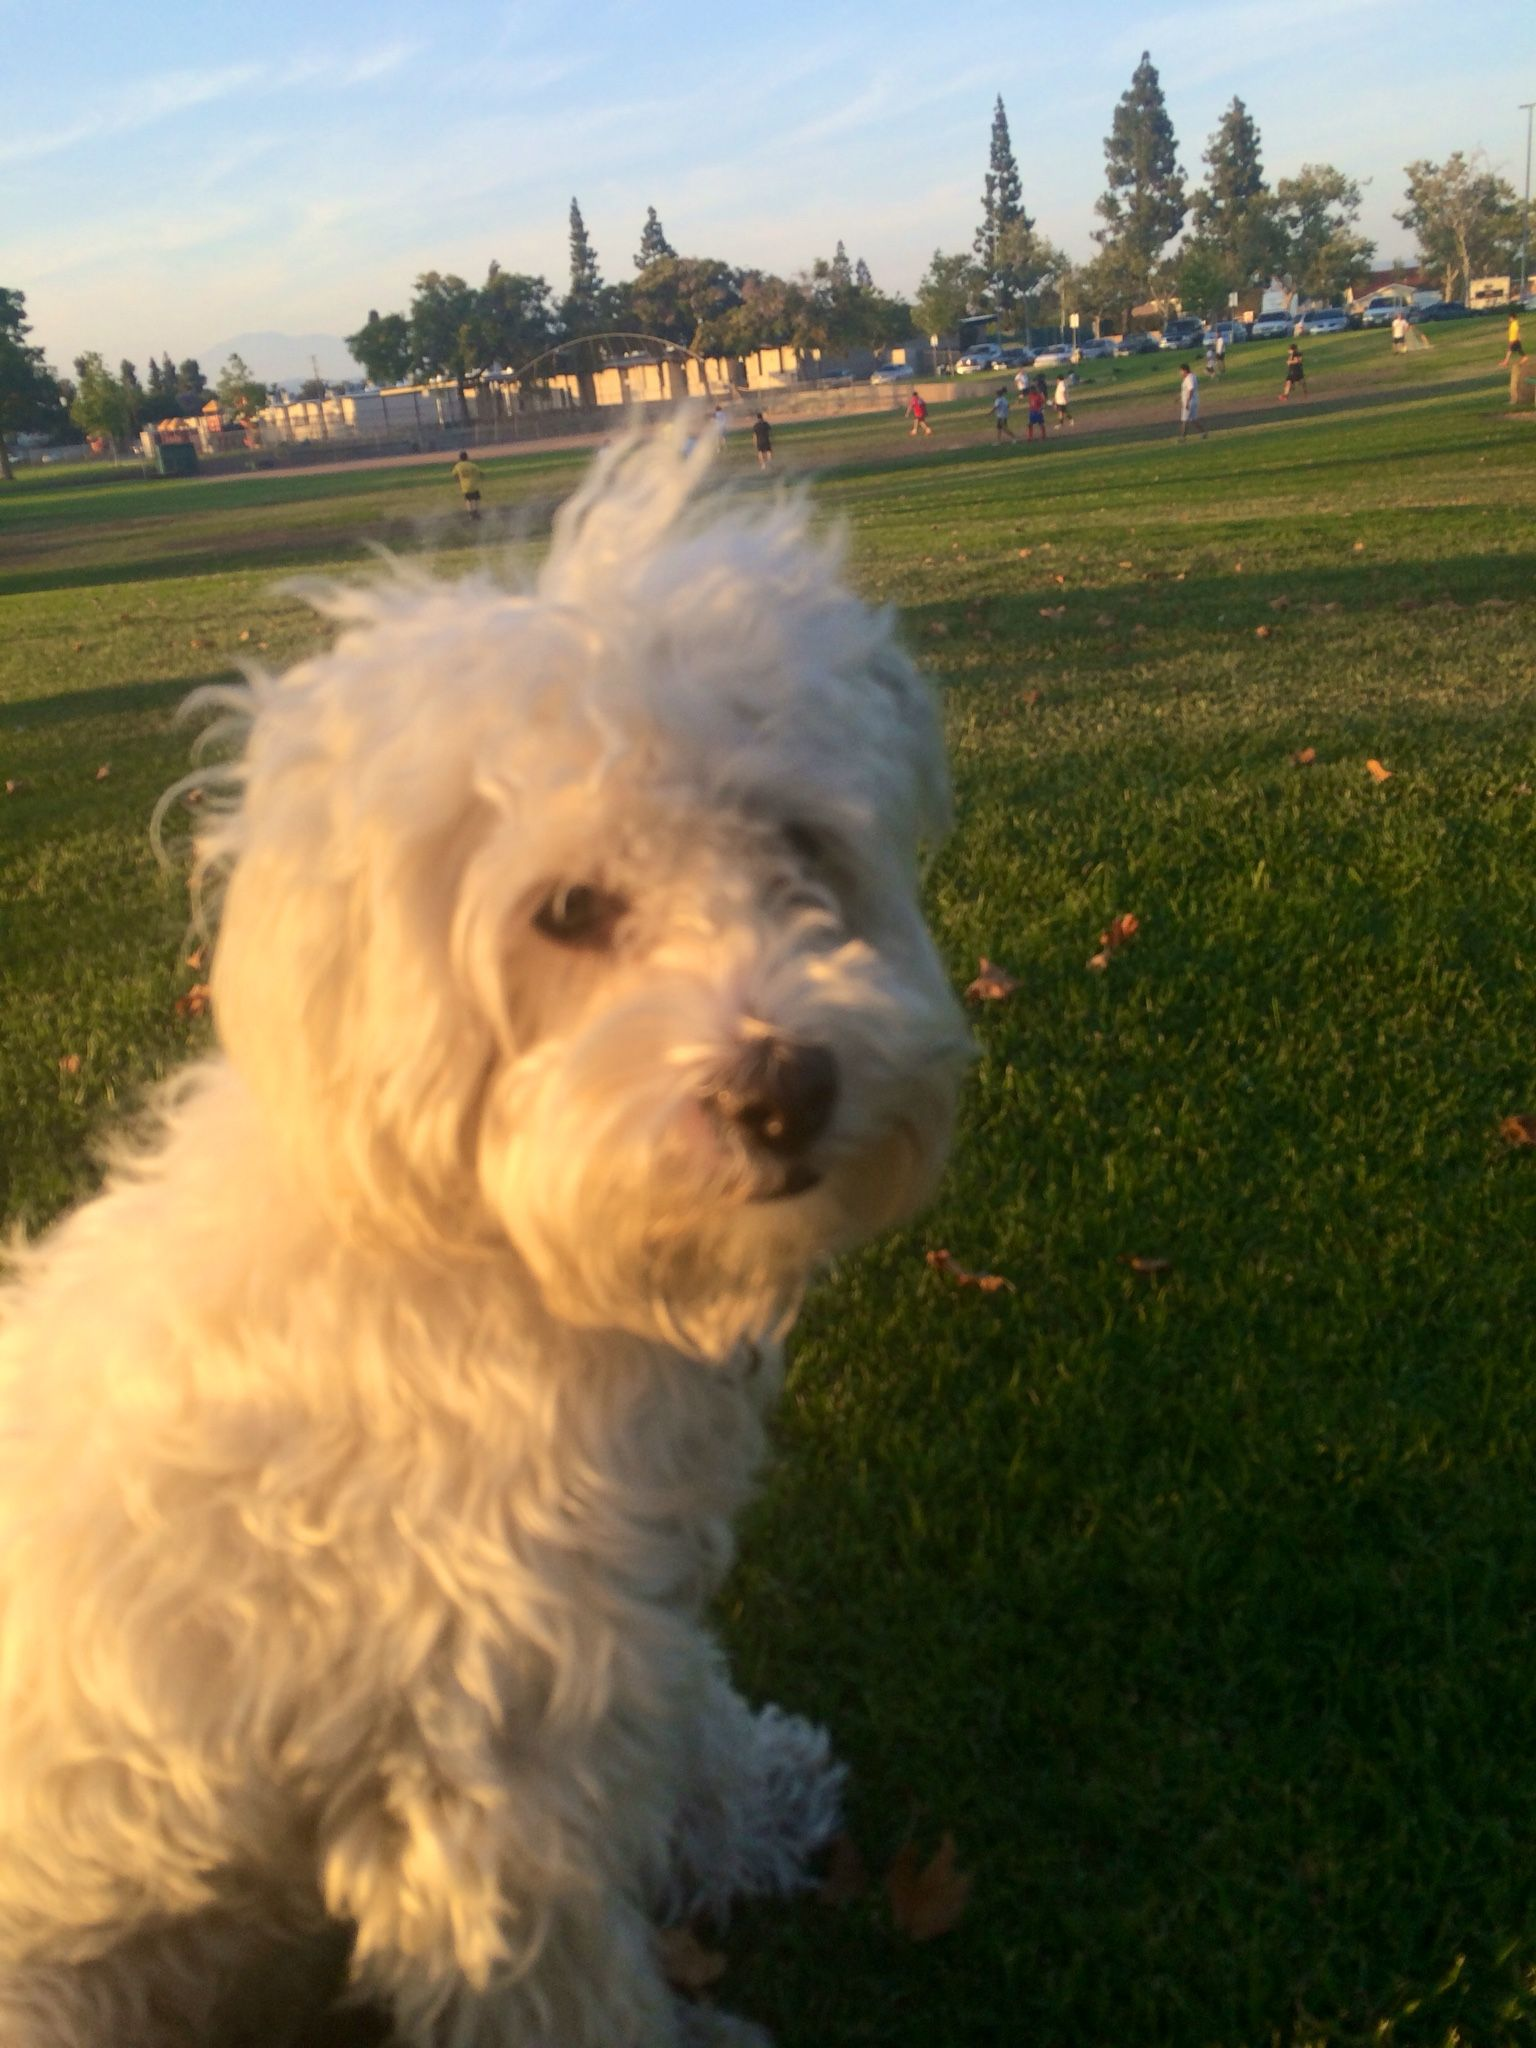 Teddy bear at the park